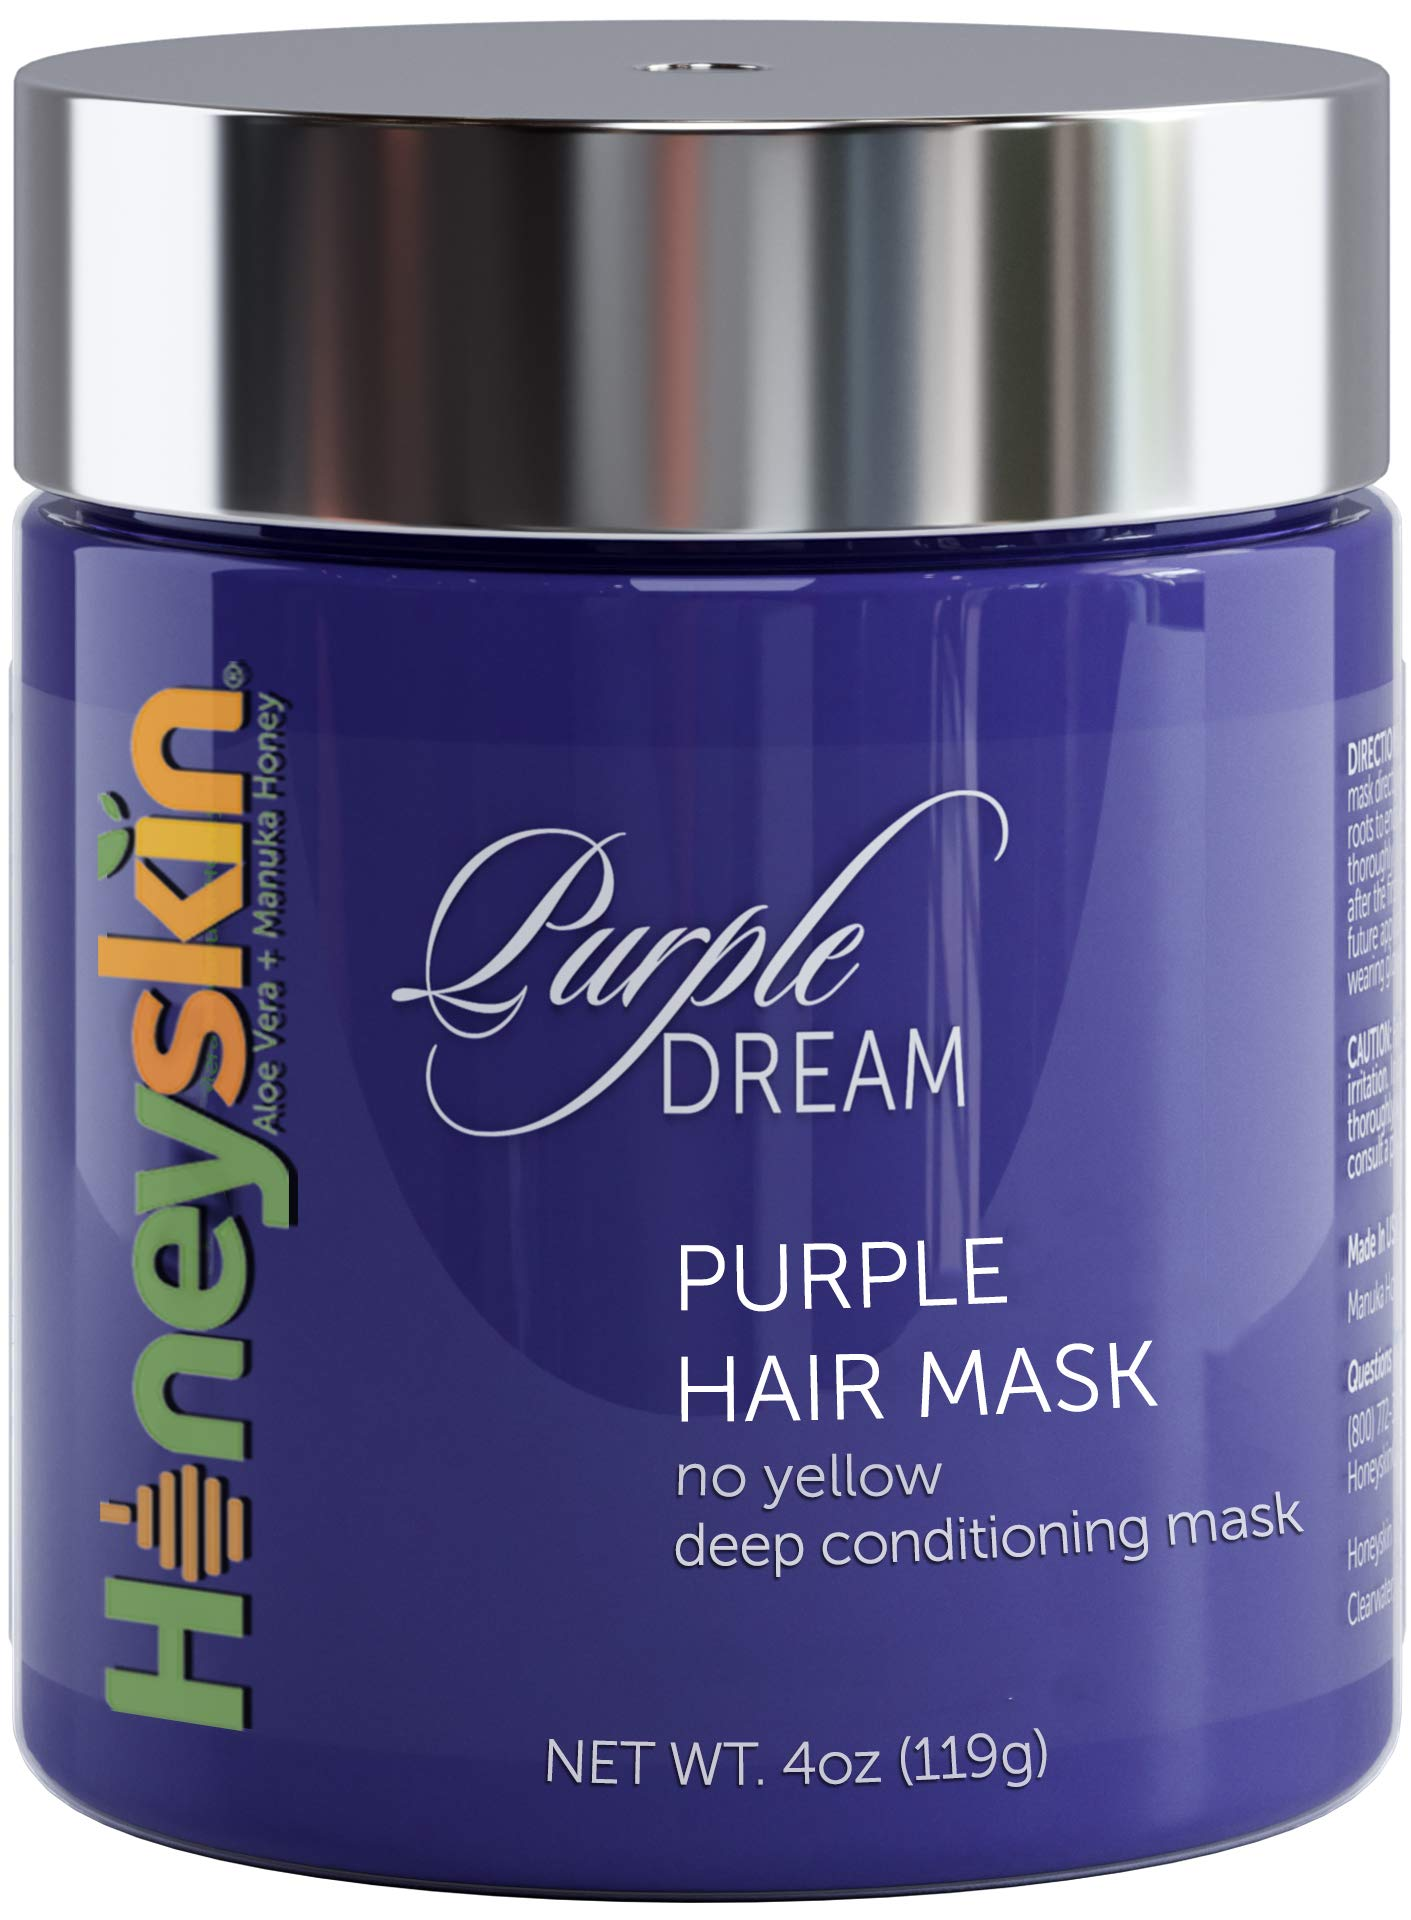 Purple Hair Mask for Blonde, Silver or Platinum Color - Sulfate Free - Deep Conditioning for Gray, Bleached, Highlighted and Color Treated Hair - Natural Blue Masque for Violet and Silver Tones (4oz) by Honeyskin